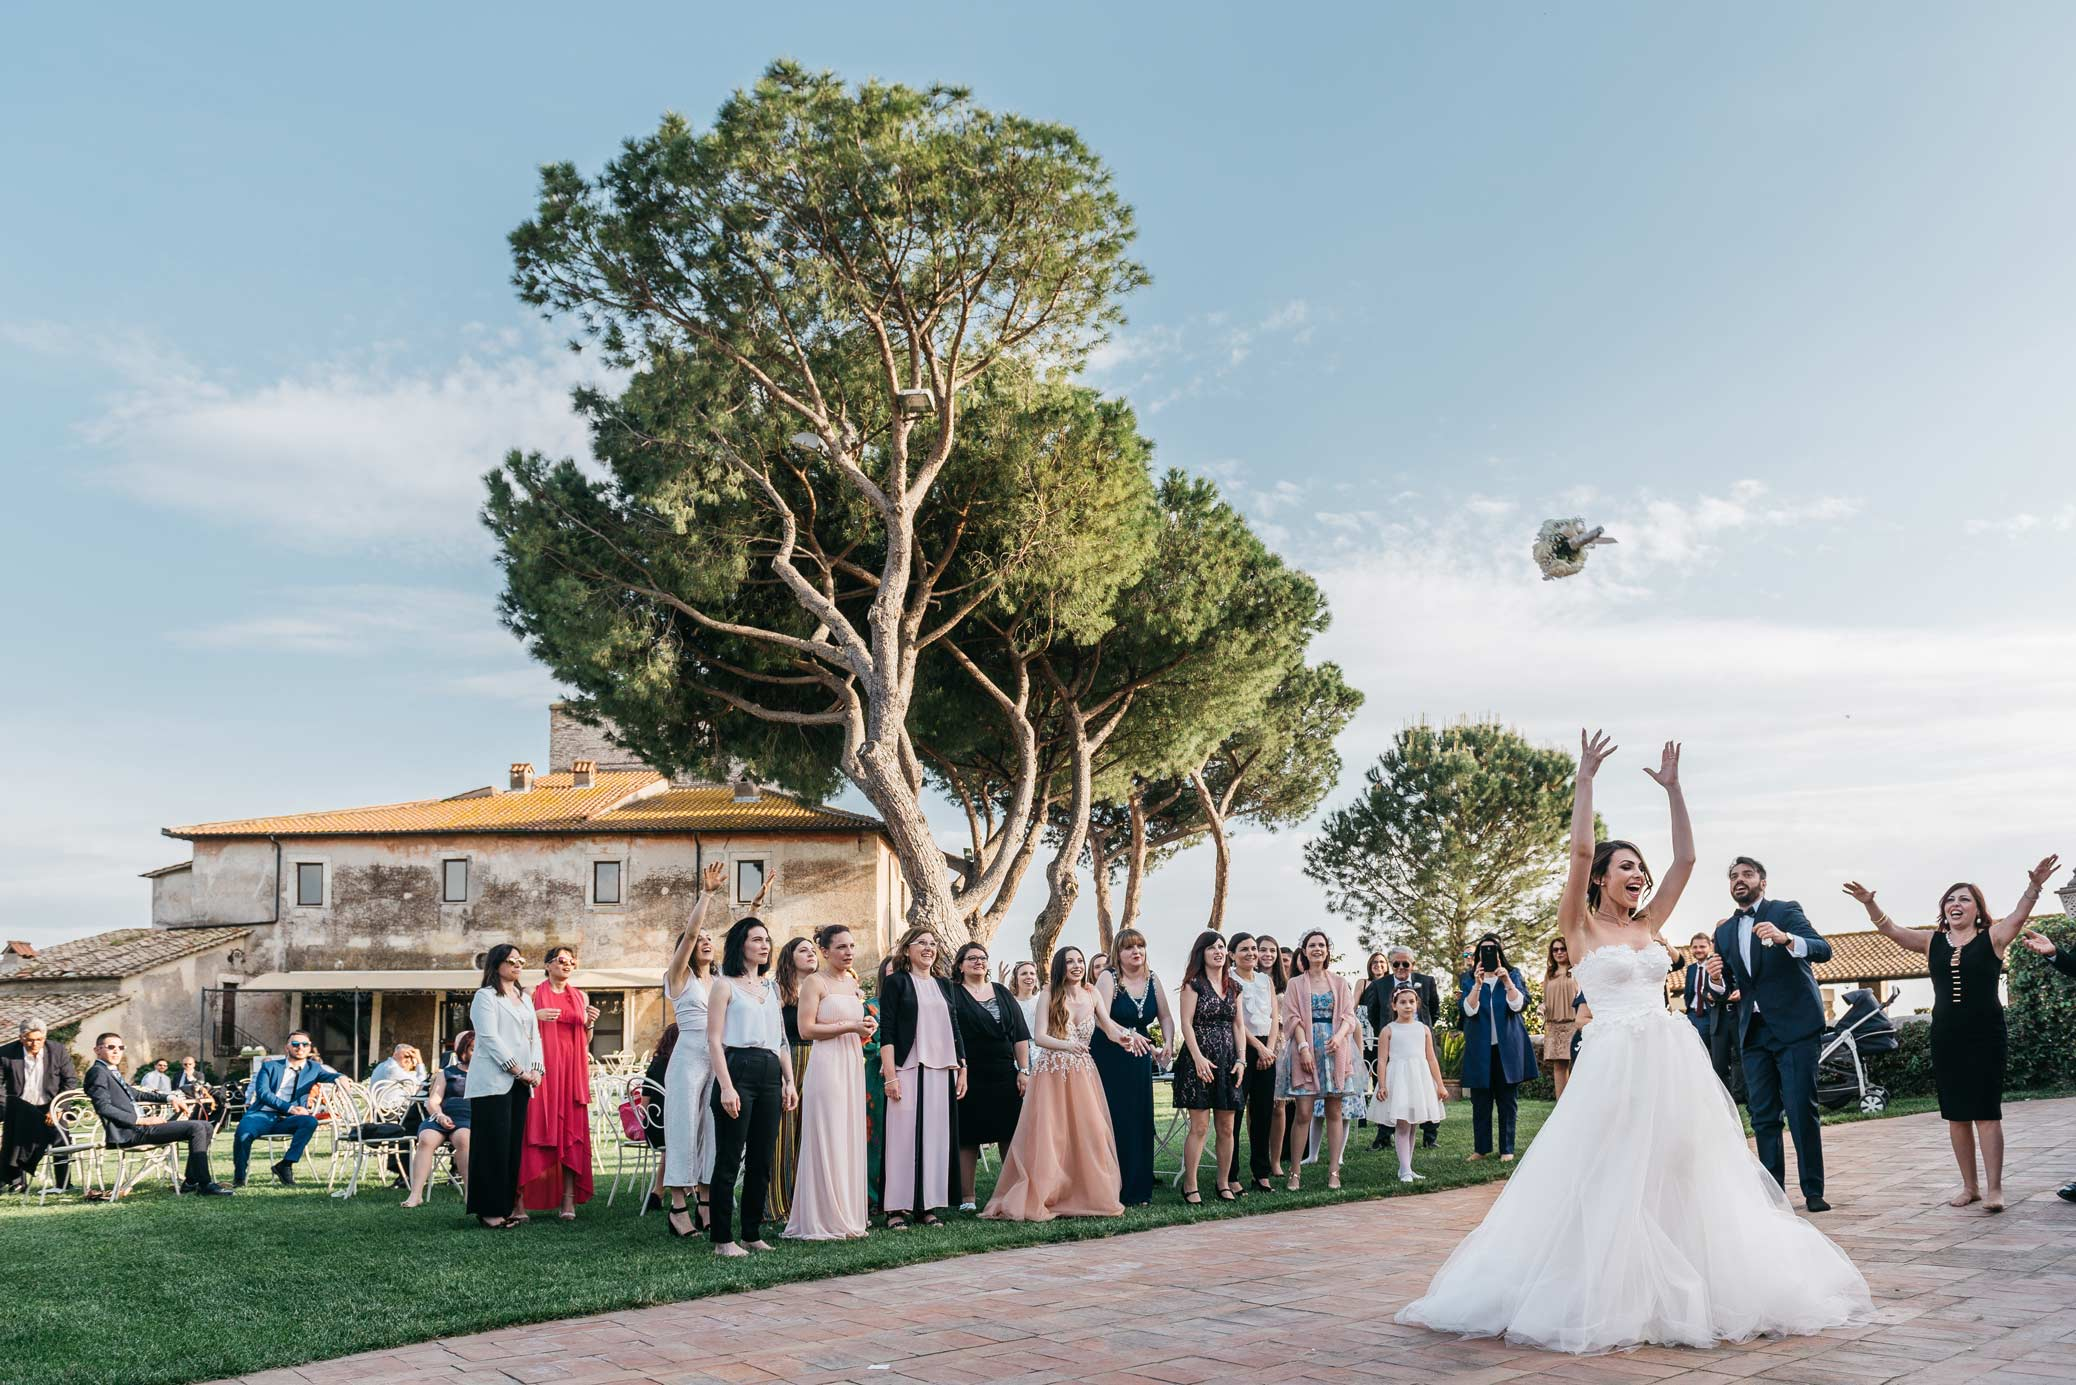 Reportage-Wedding-Photography-Reception